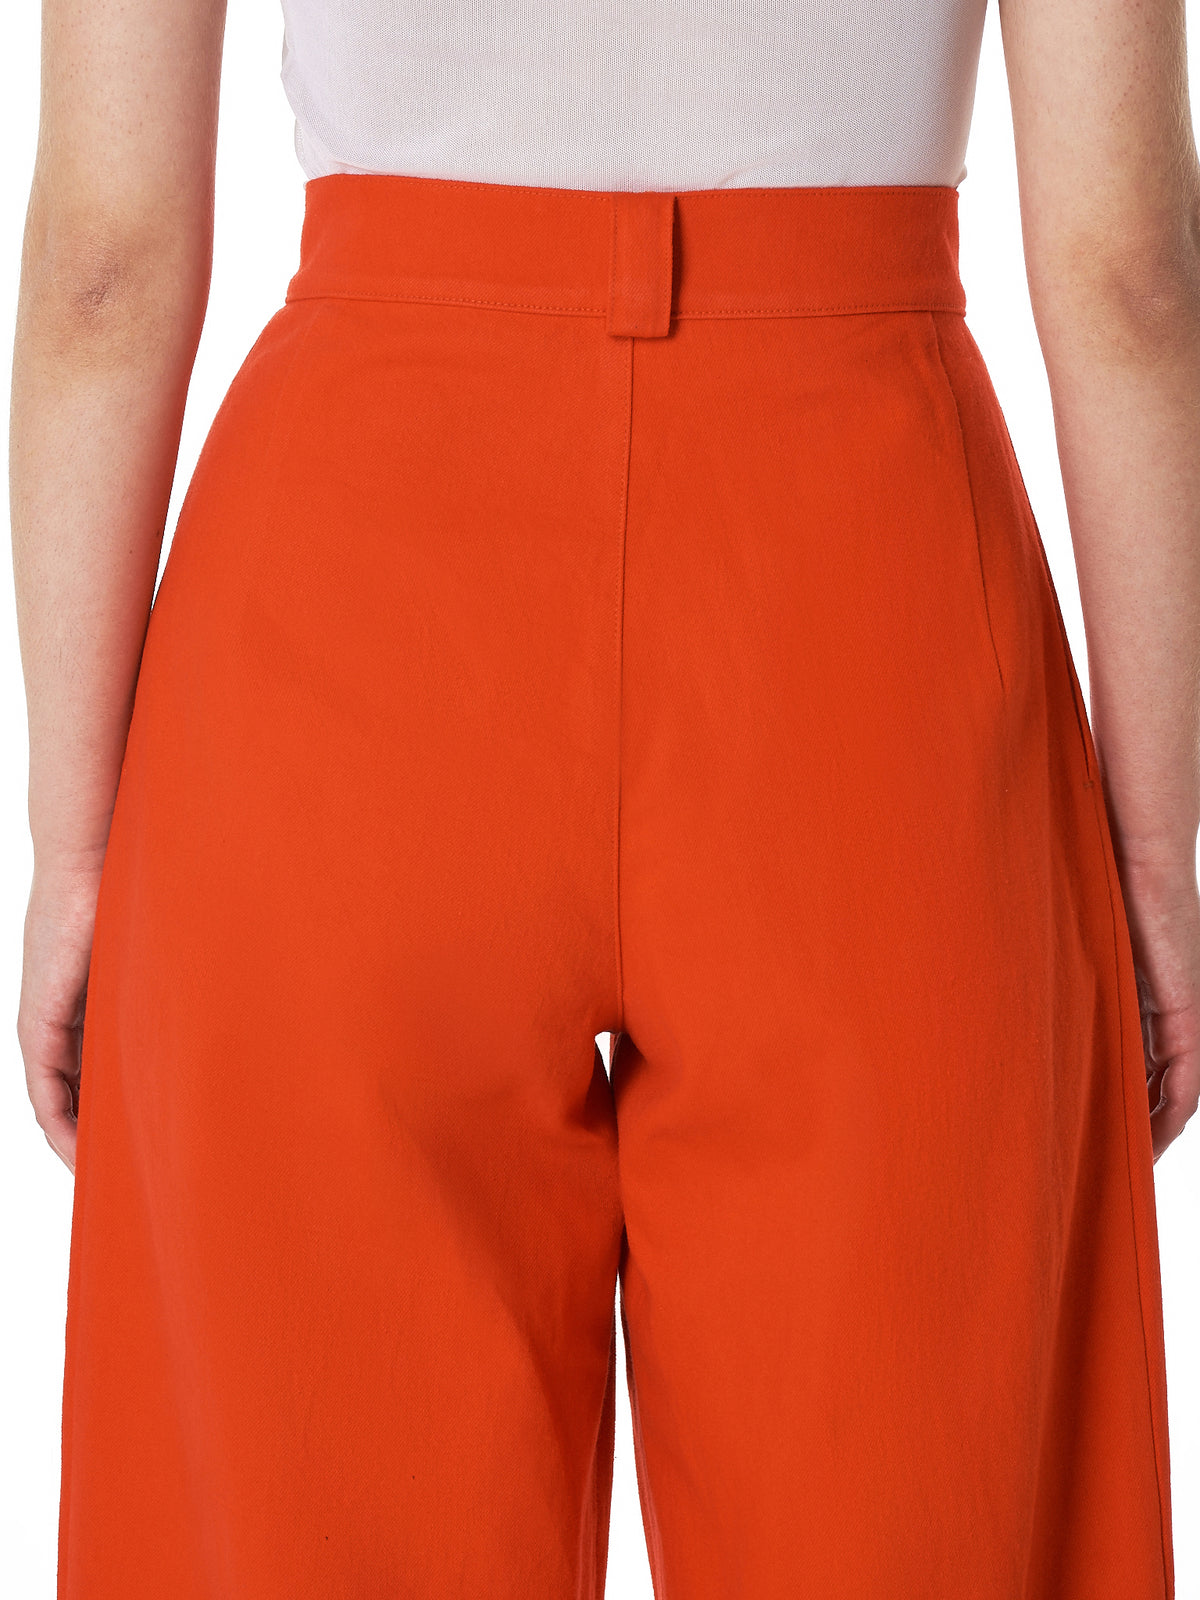 Nancy Stella Soto Cutout Trouser - Hlorenzo Detail 2